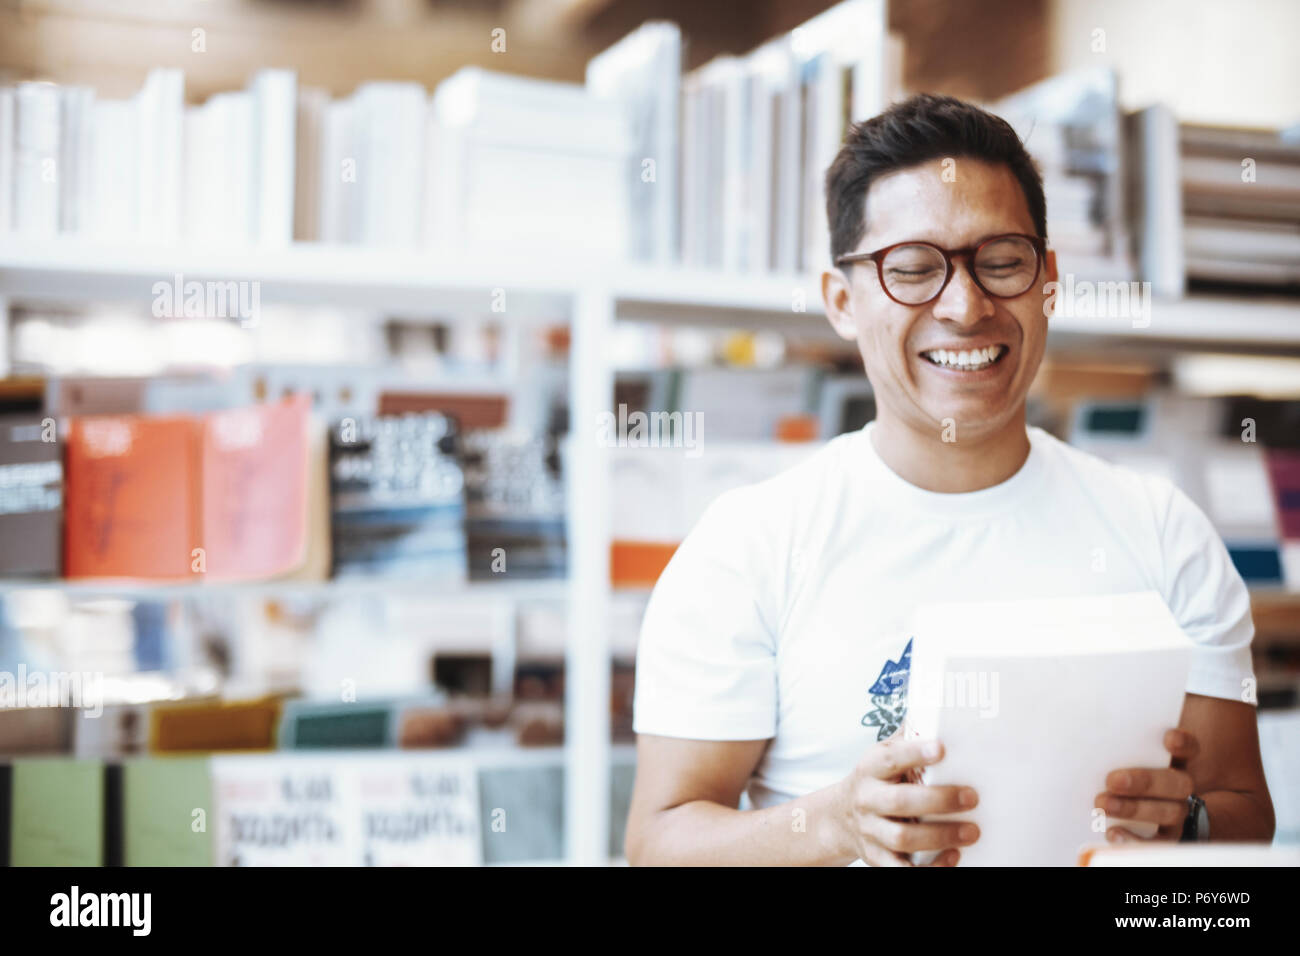 Young happy spectacled man holding book with blank cover and laughing. - Stock Image